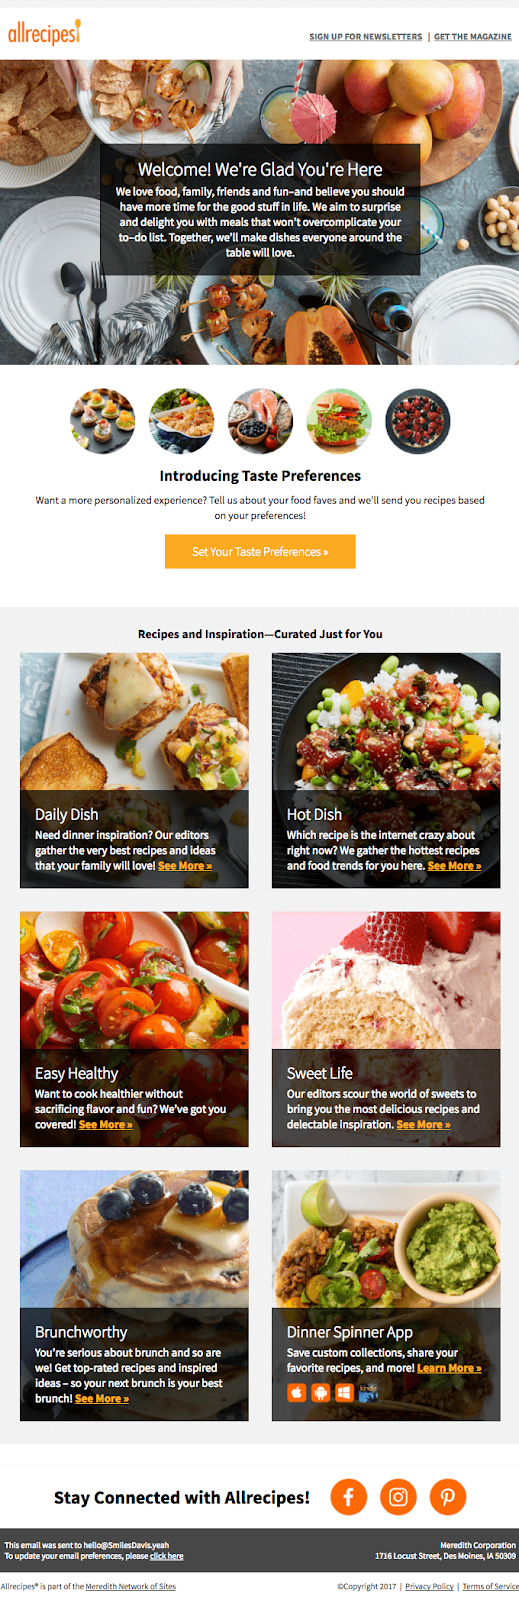 new-customer-email-design.png